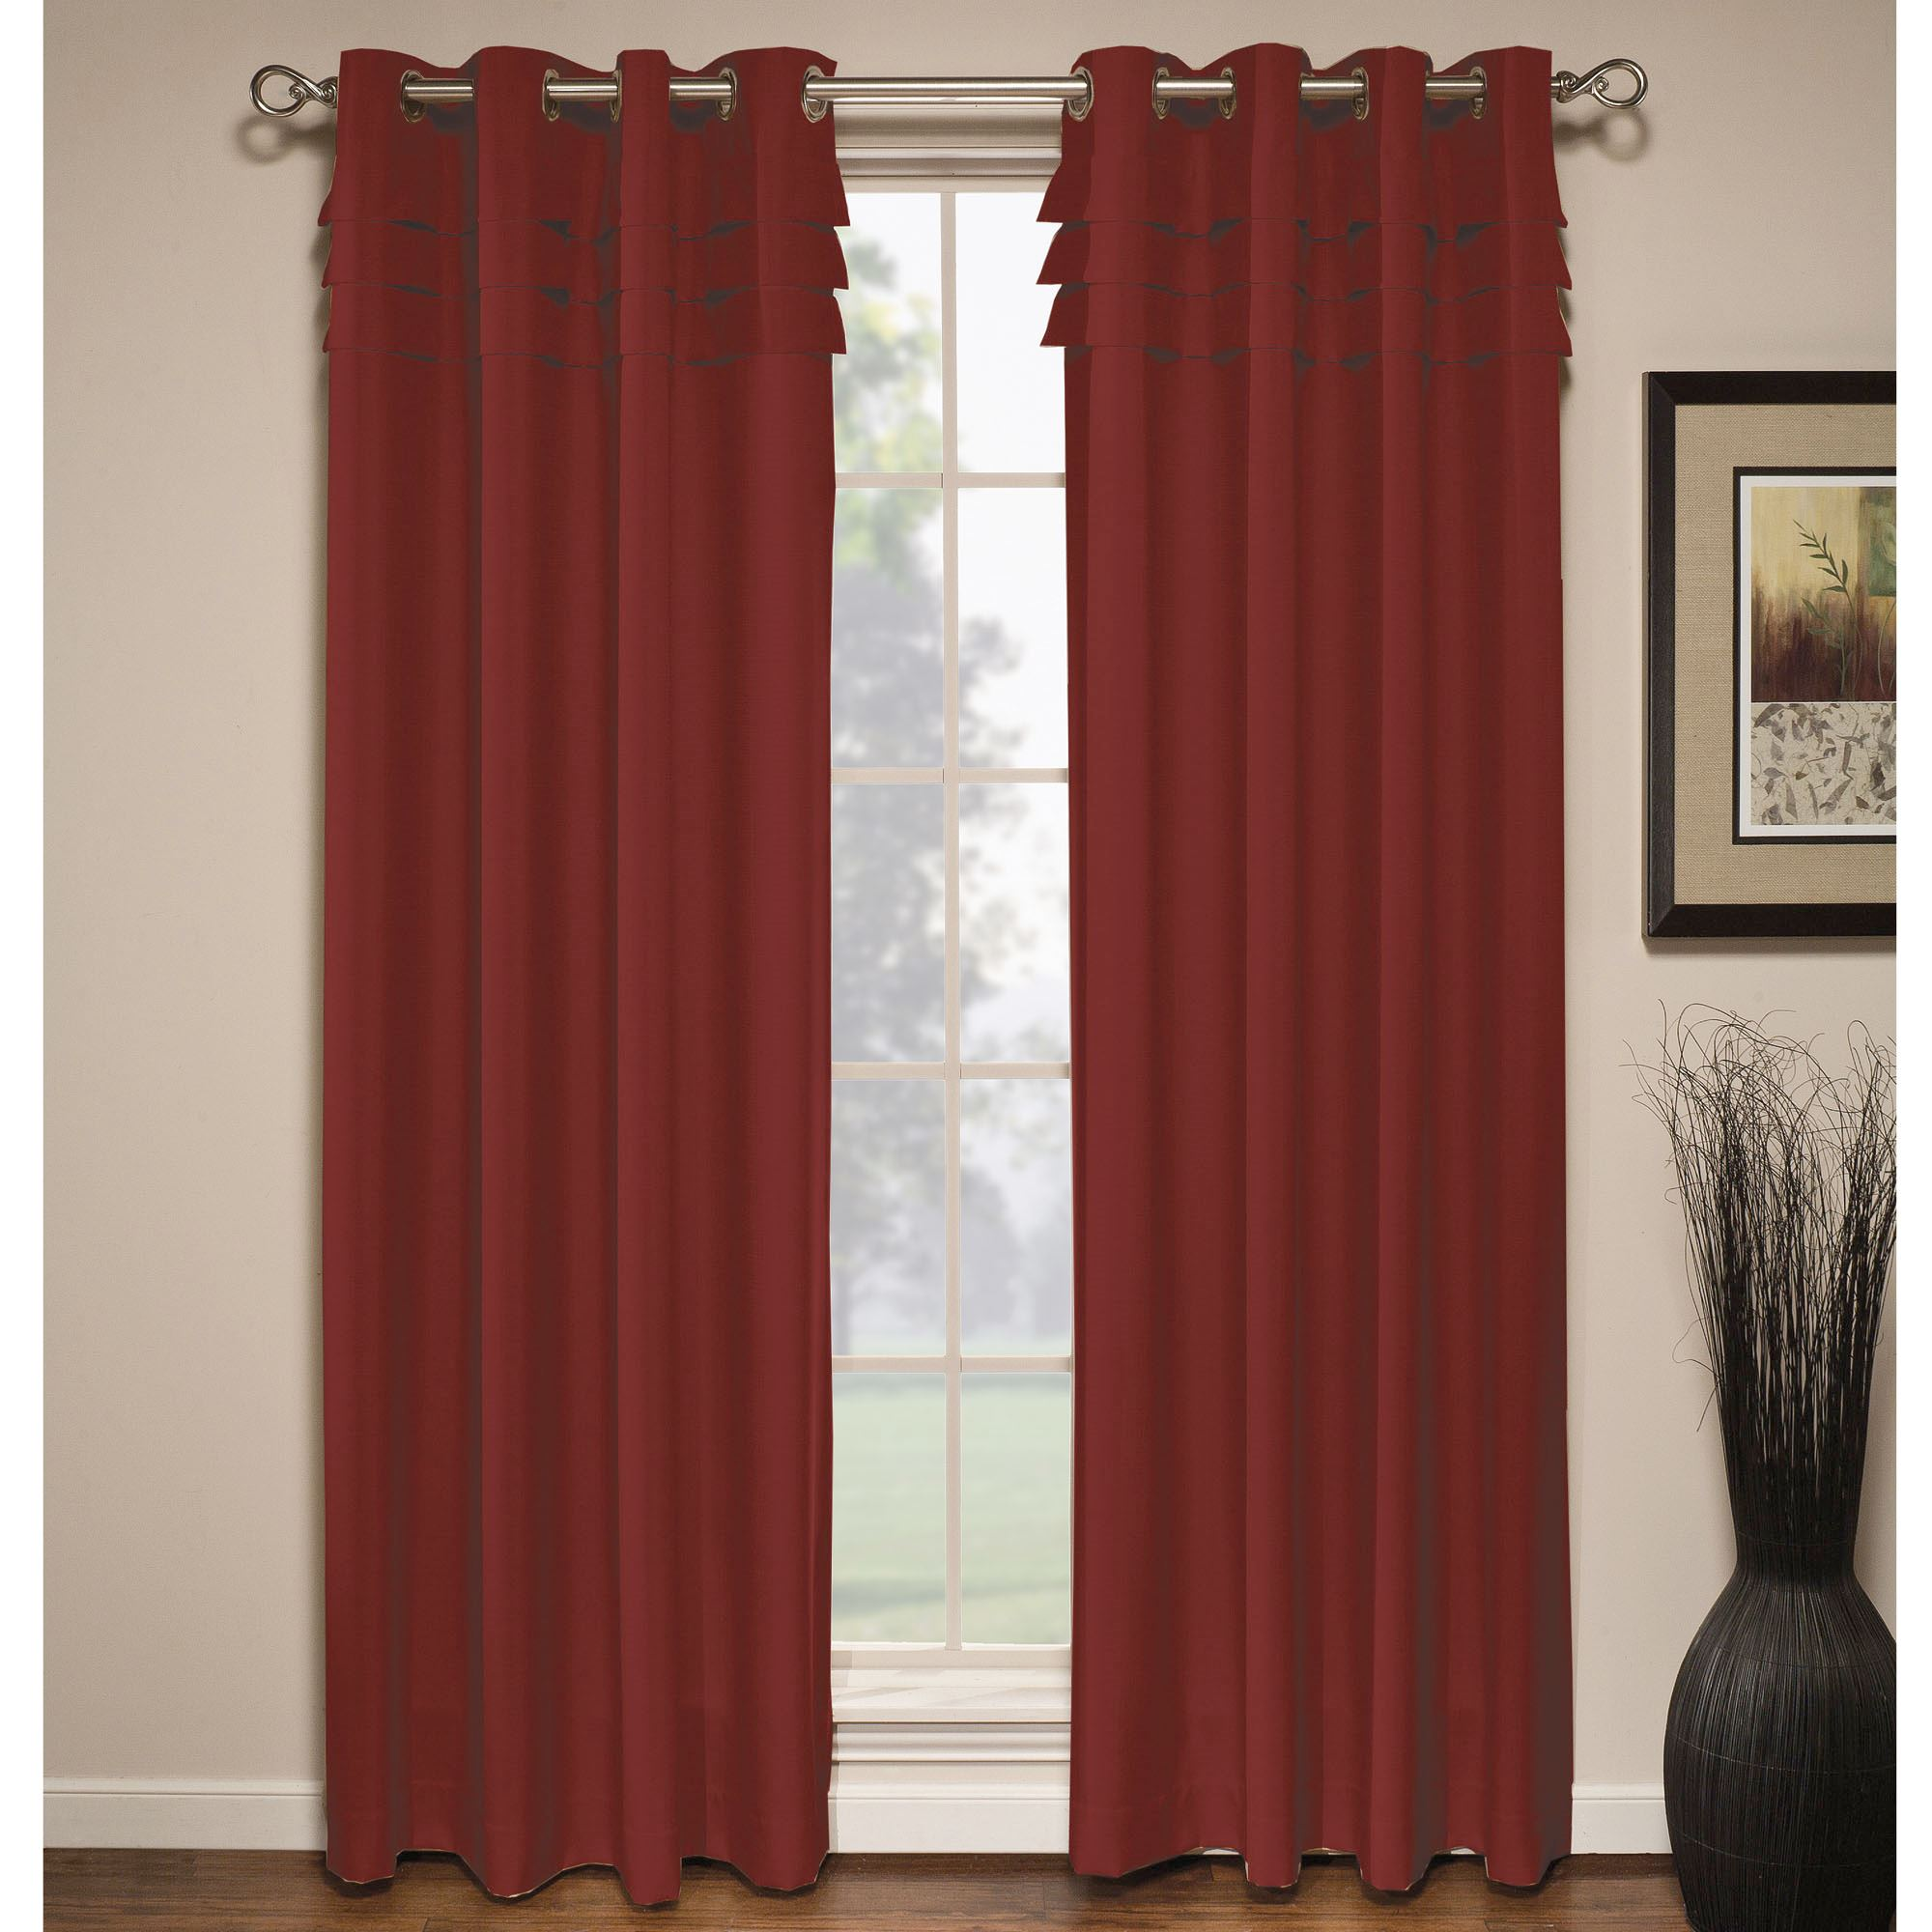 eco friendly merge orange window p curtains curtain panels printed maple home leaf